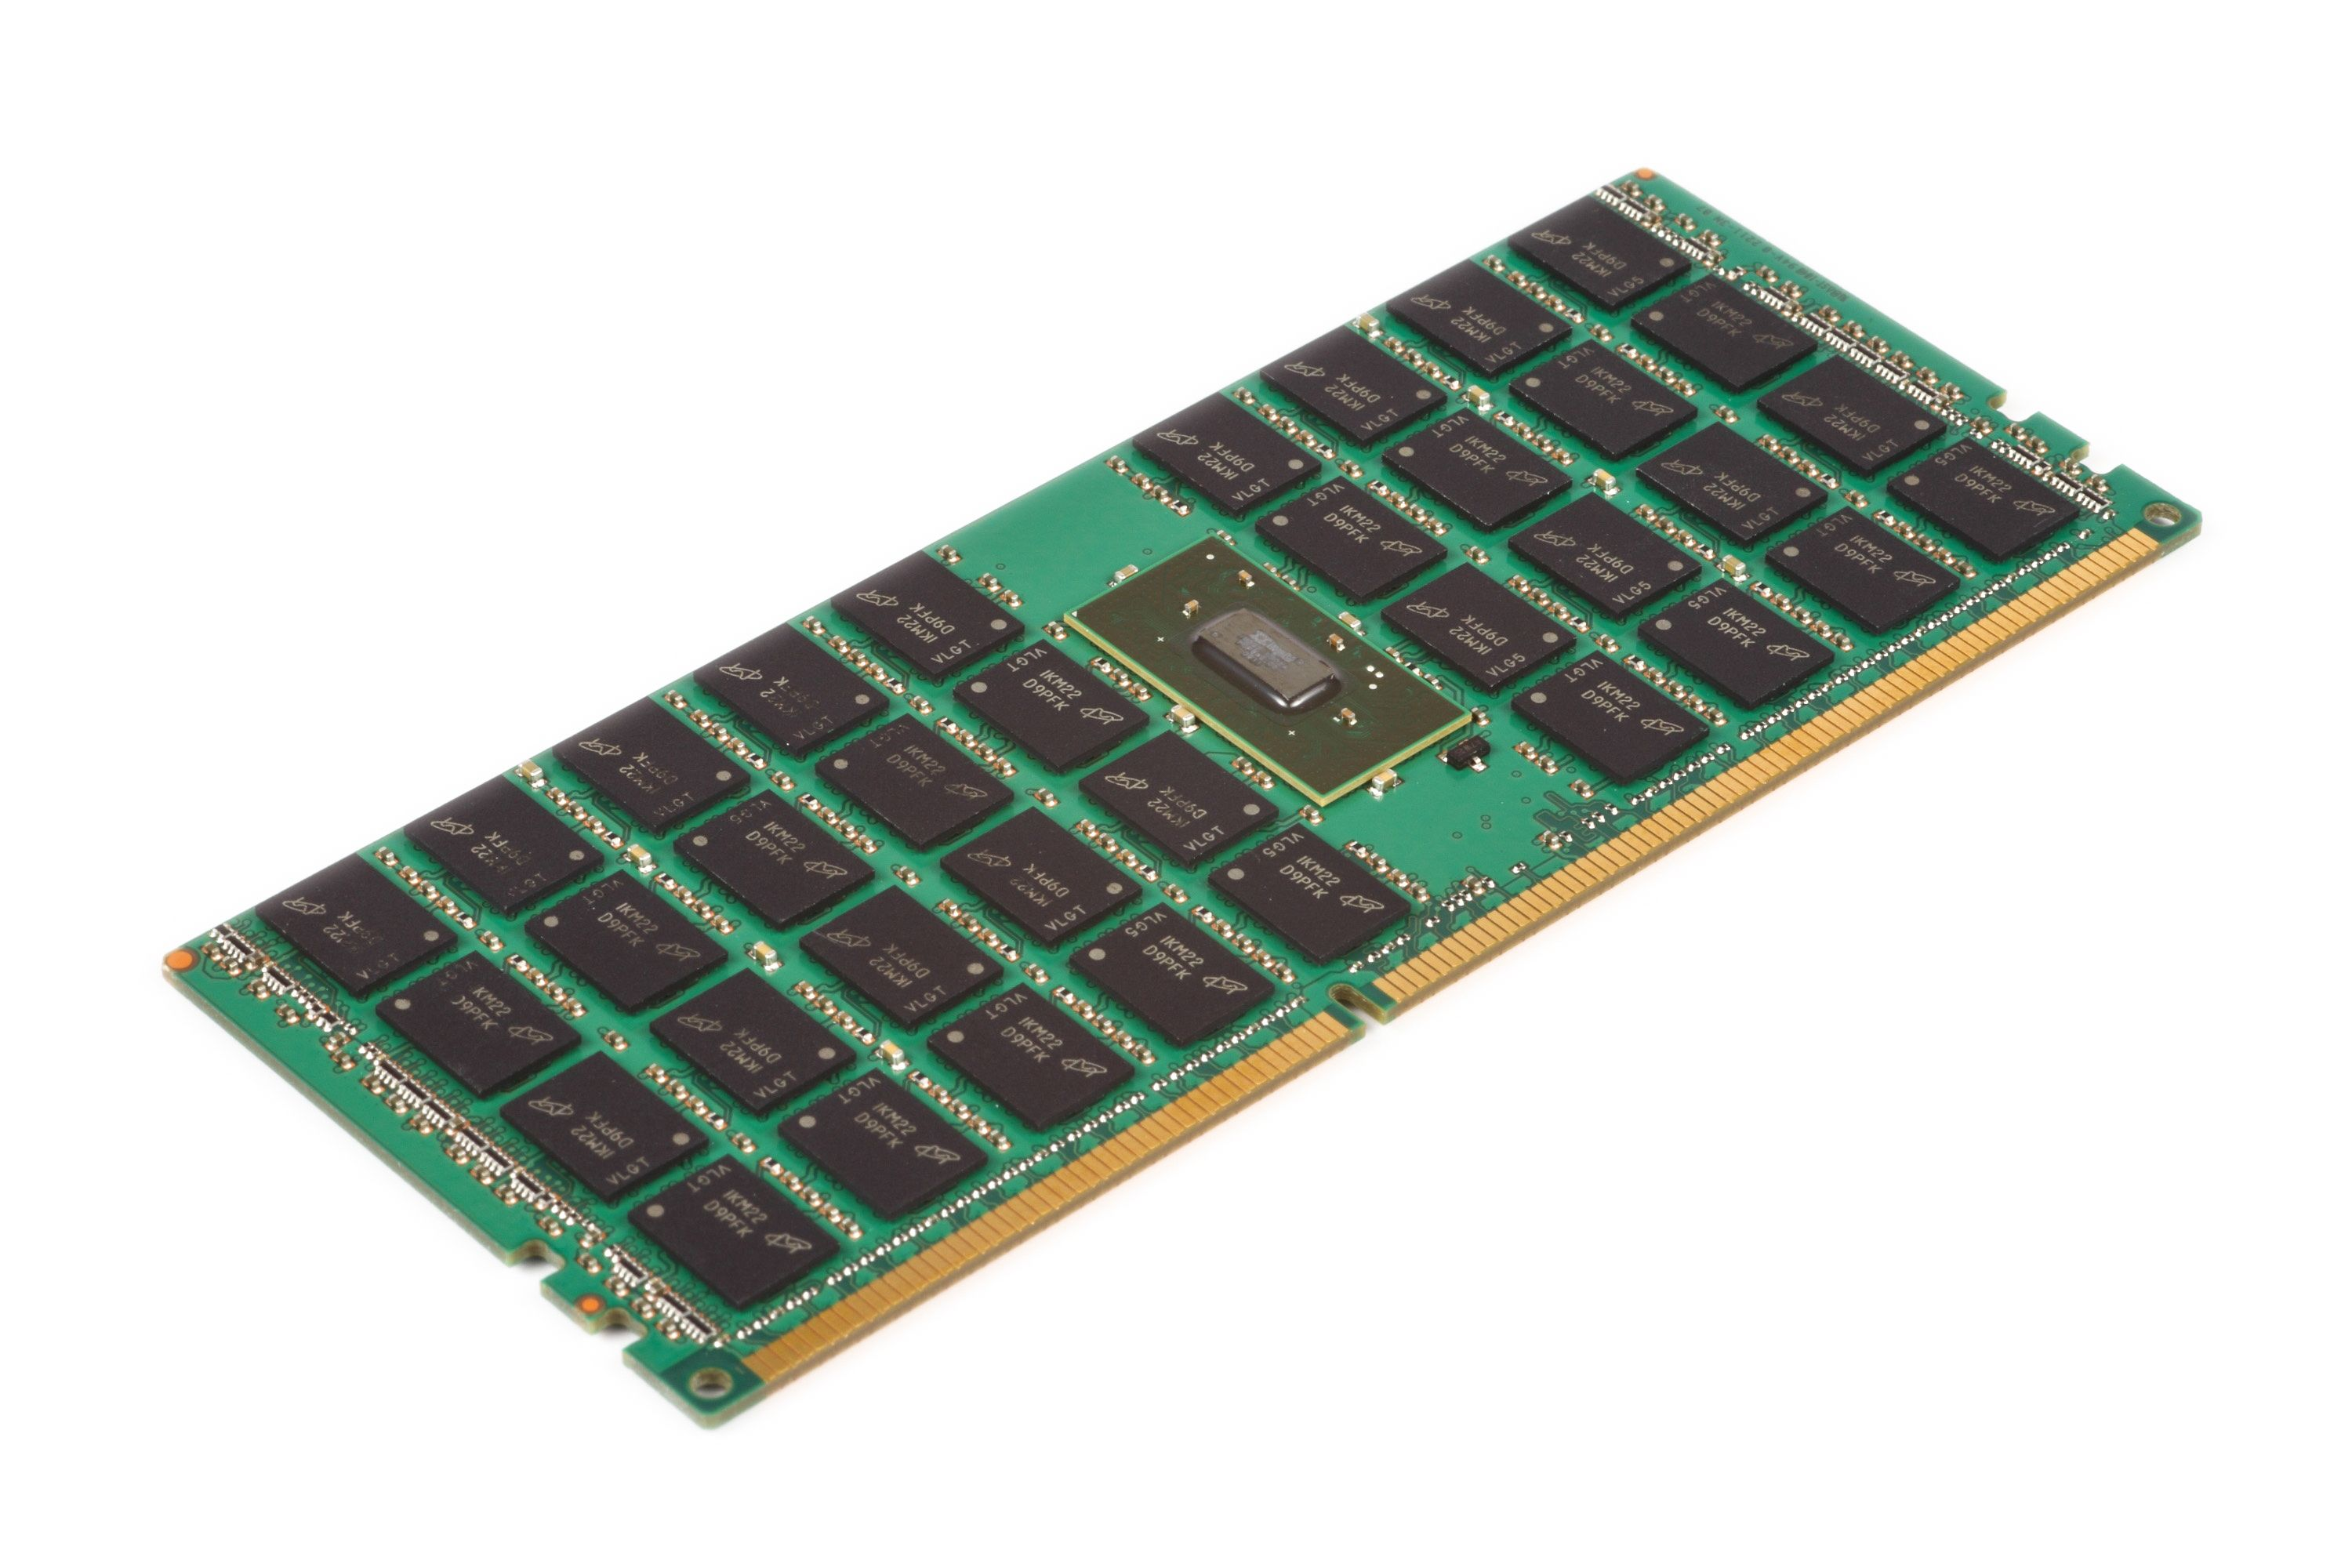 Server solutions featuring LRDIMMs, they enable you to add more DIMMs per channel and increase the memory capacity.